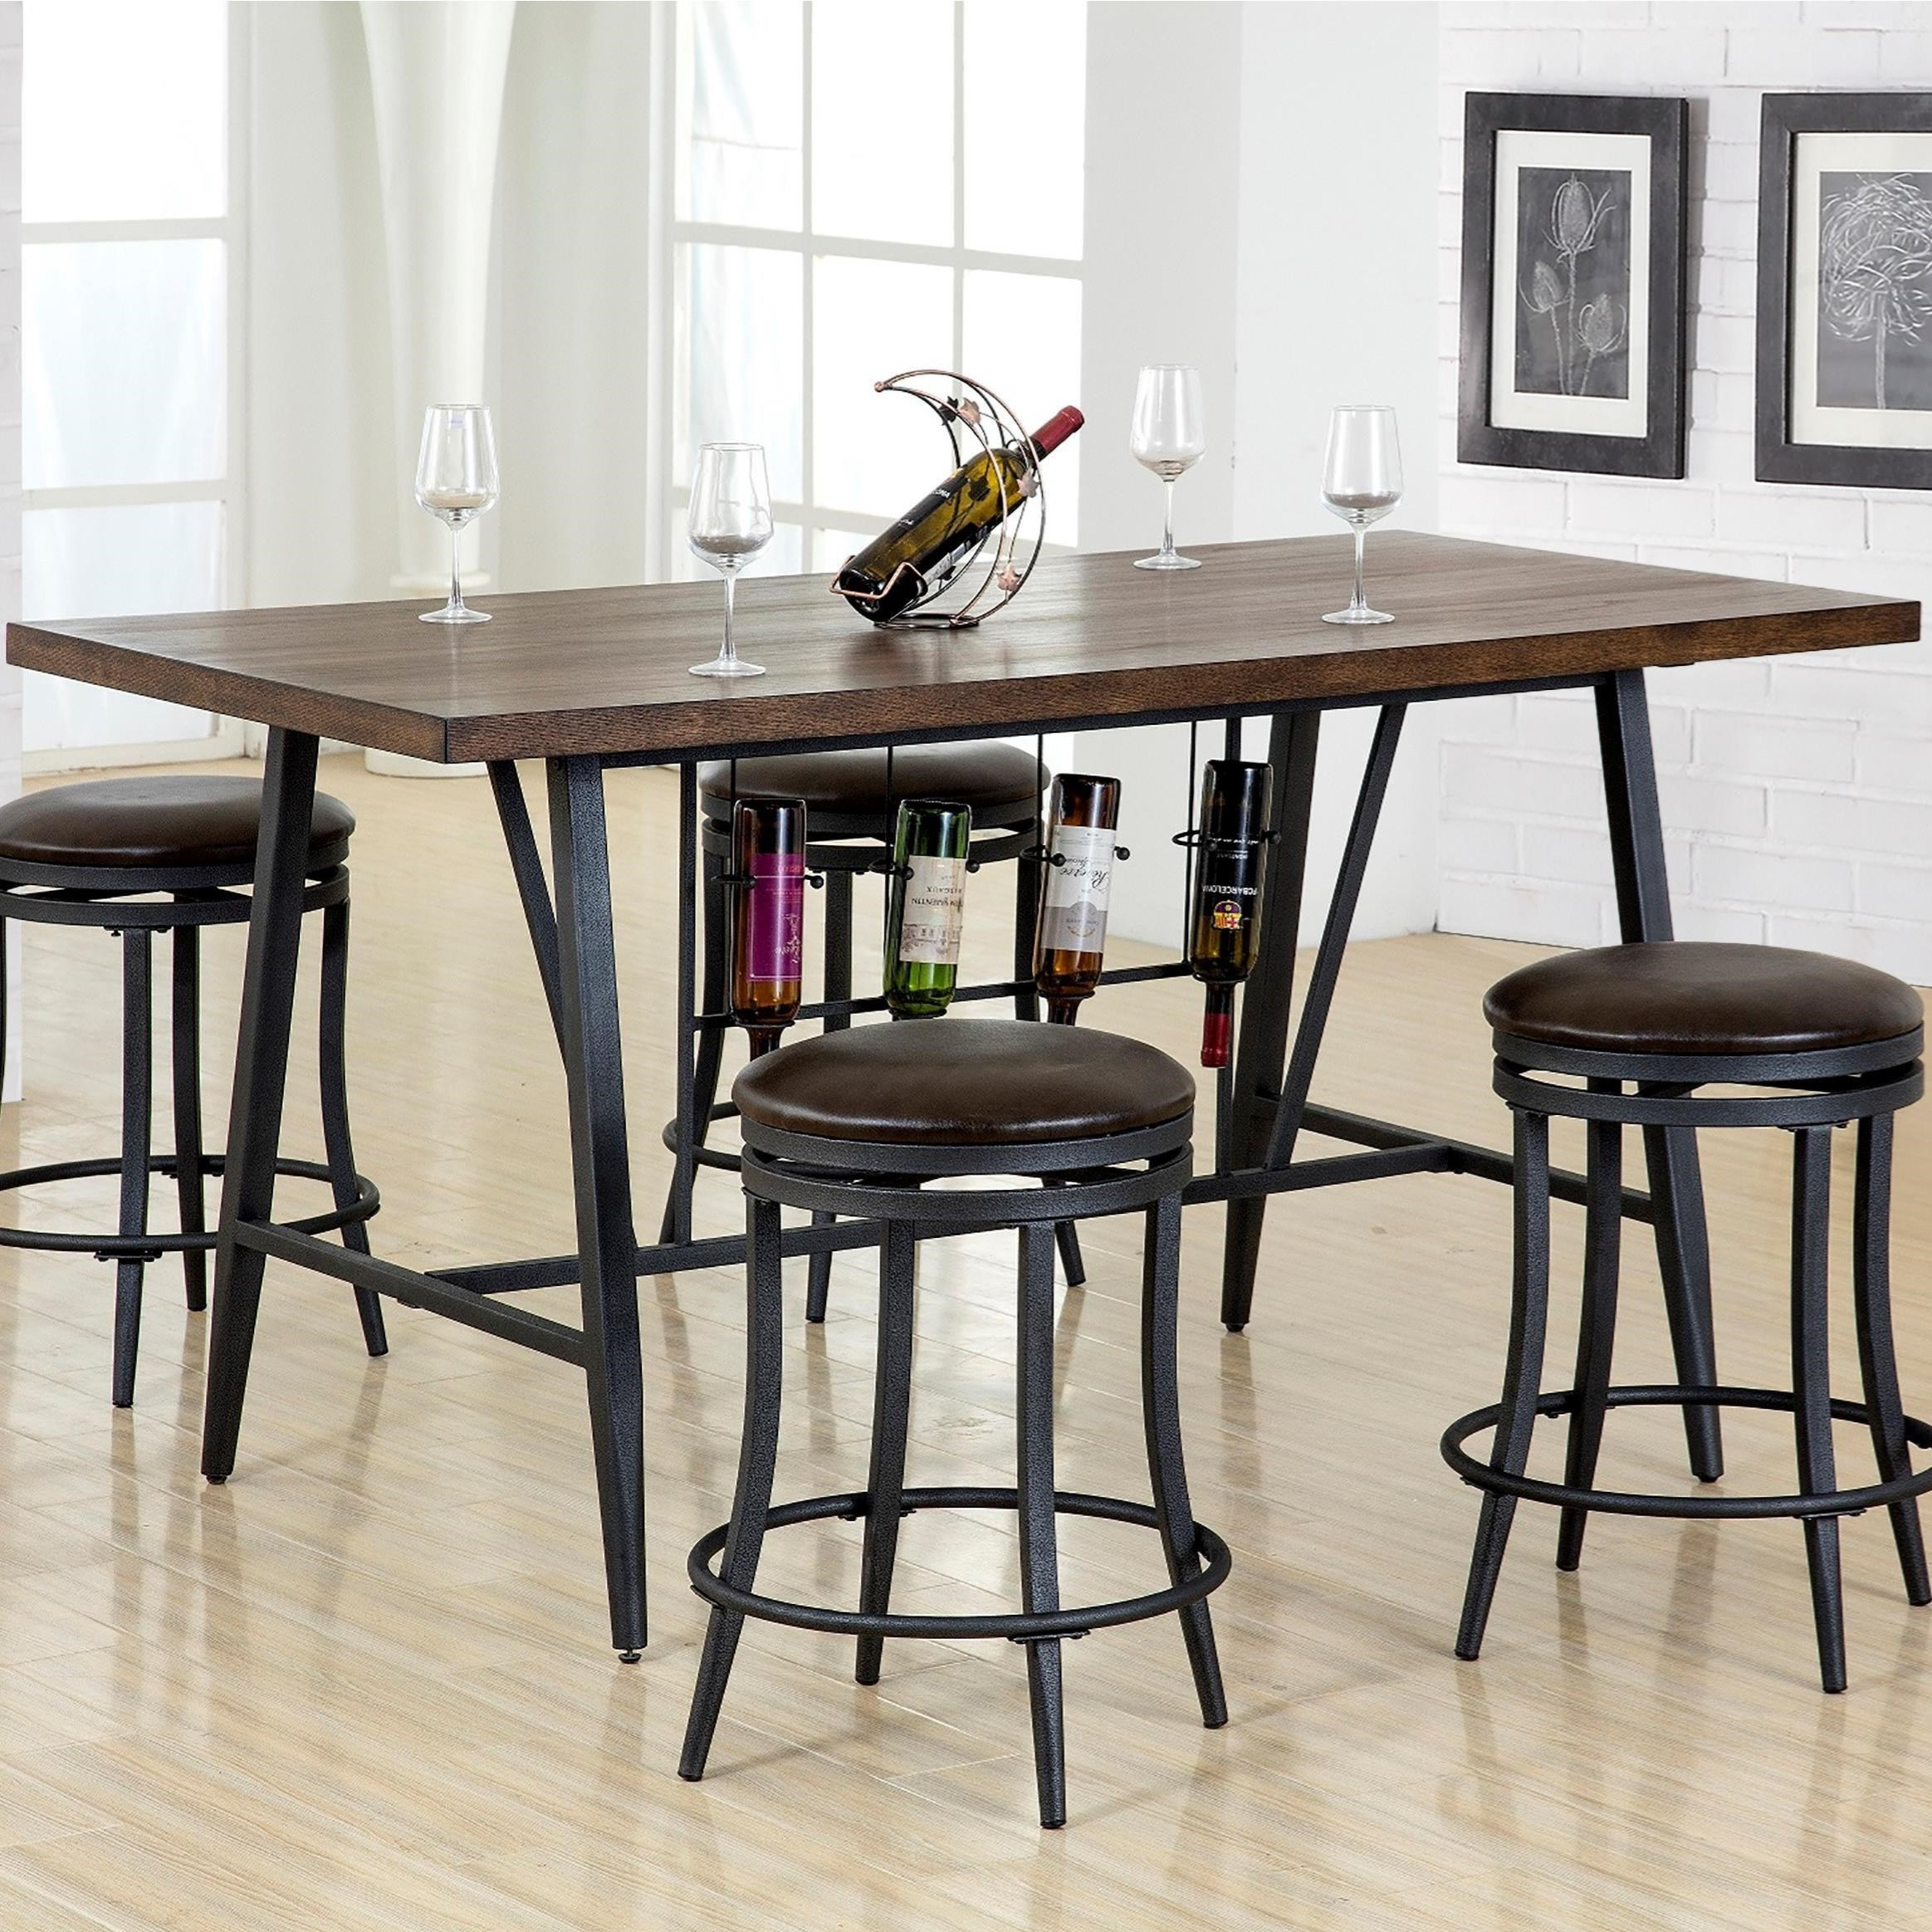 america shipping furniture today free overstock counter garden rustic nailhead cherry of height product tables brown home table banea